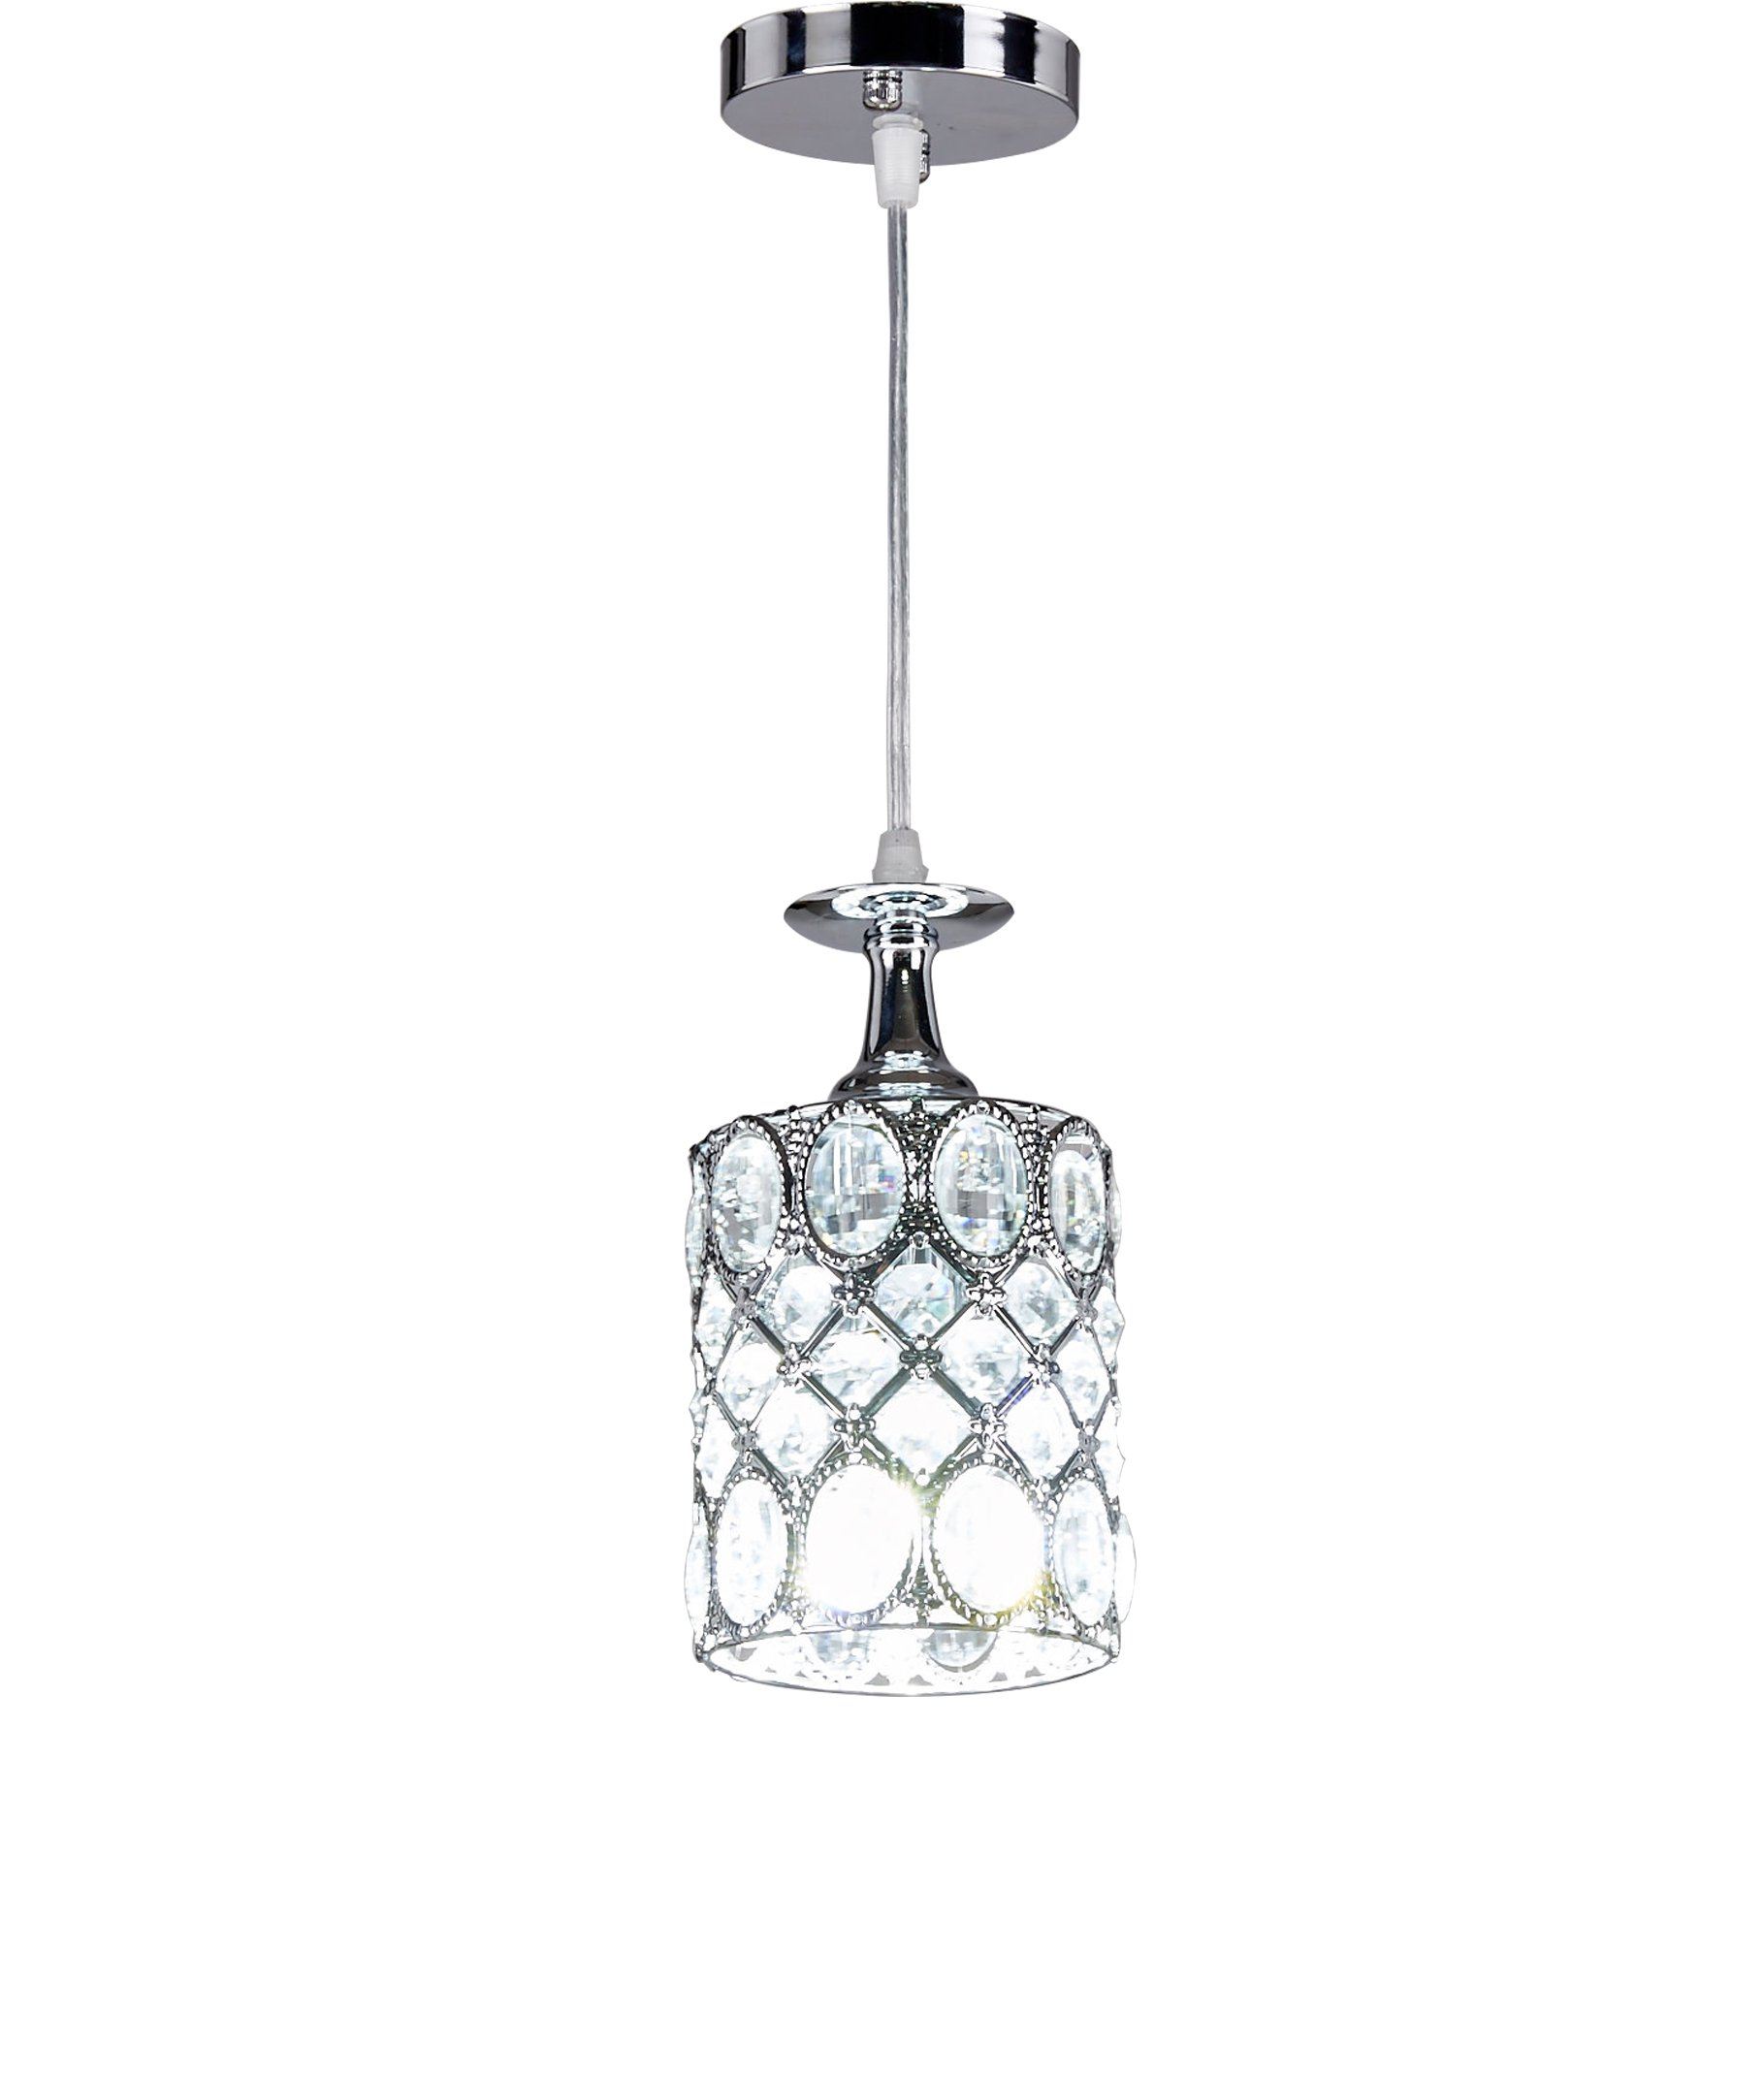 MonaLisa Gallery Chrome Crystal Mini Pendant Light,Kitchen Hanging Ceiling Lighting Fixture SML-8675-X-W4-Silver